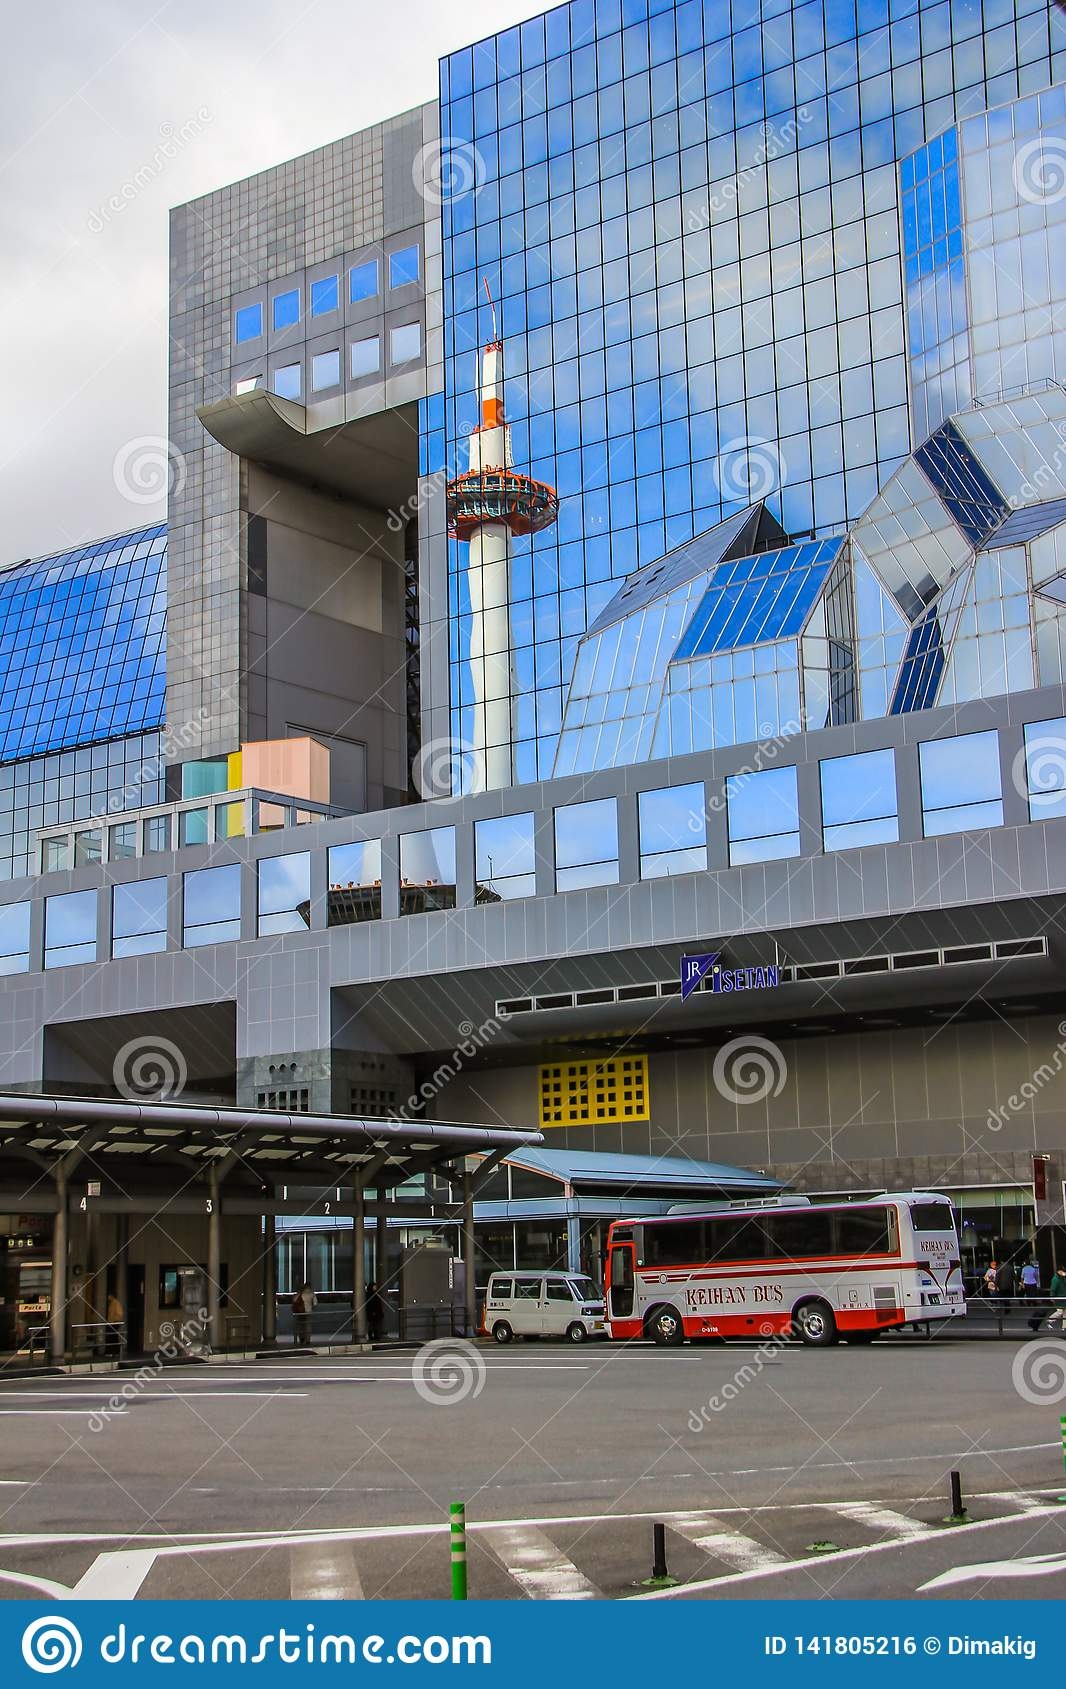 Wall and windows of Kyoto station. Modern architecture of Japan.